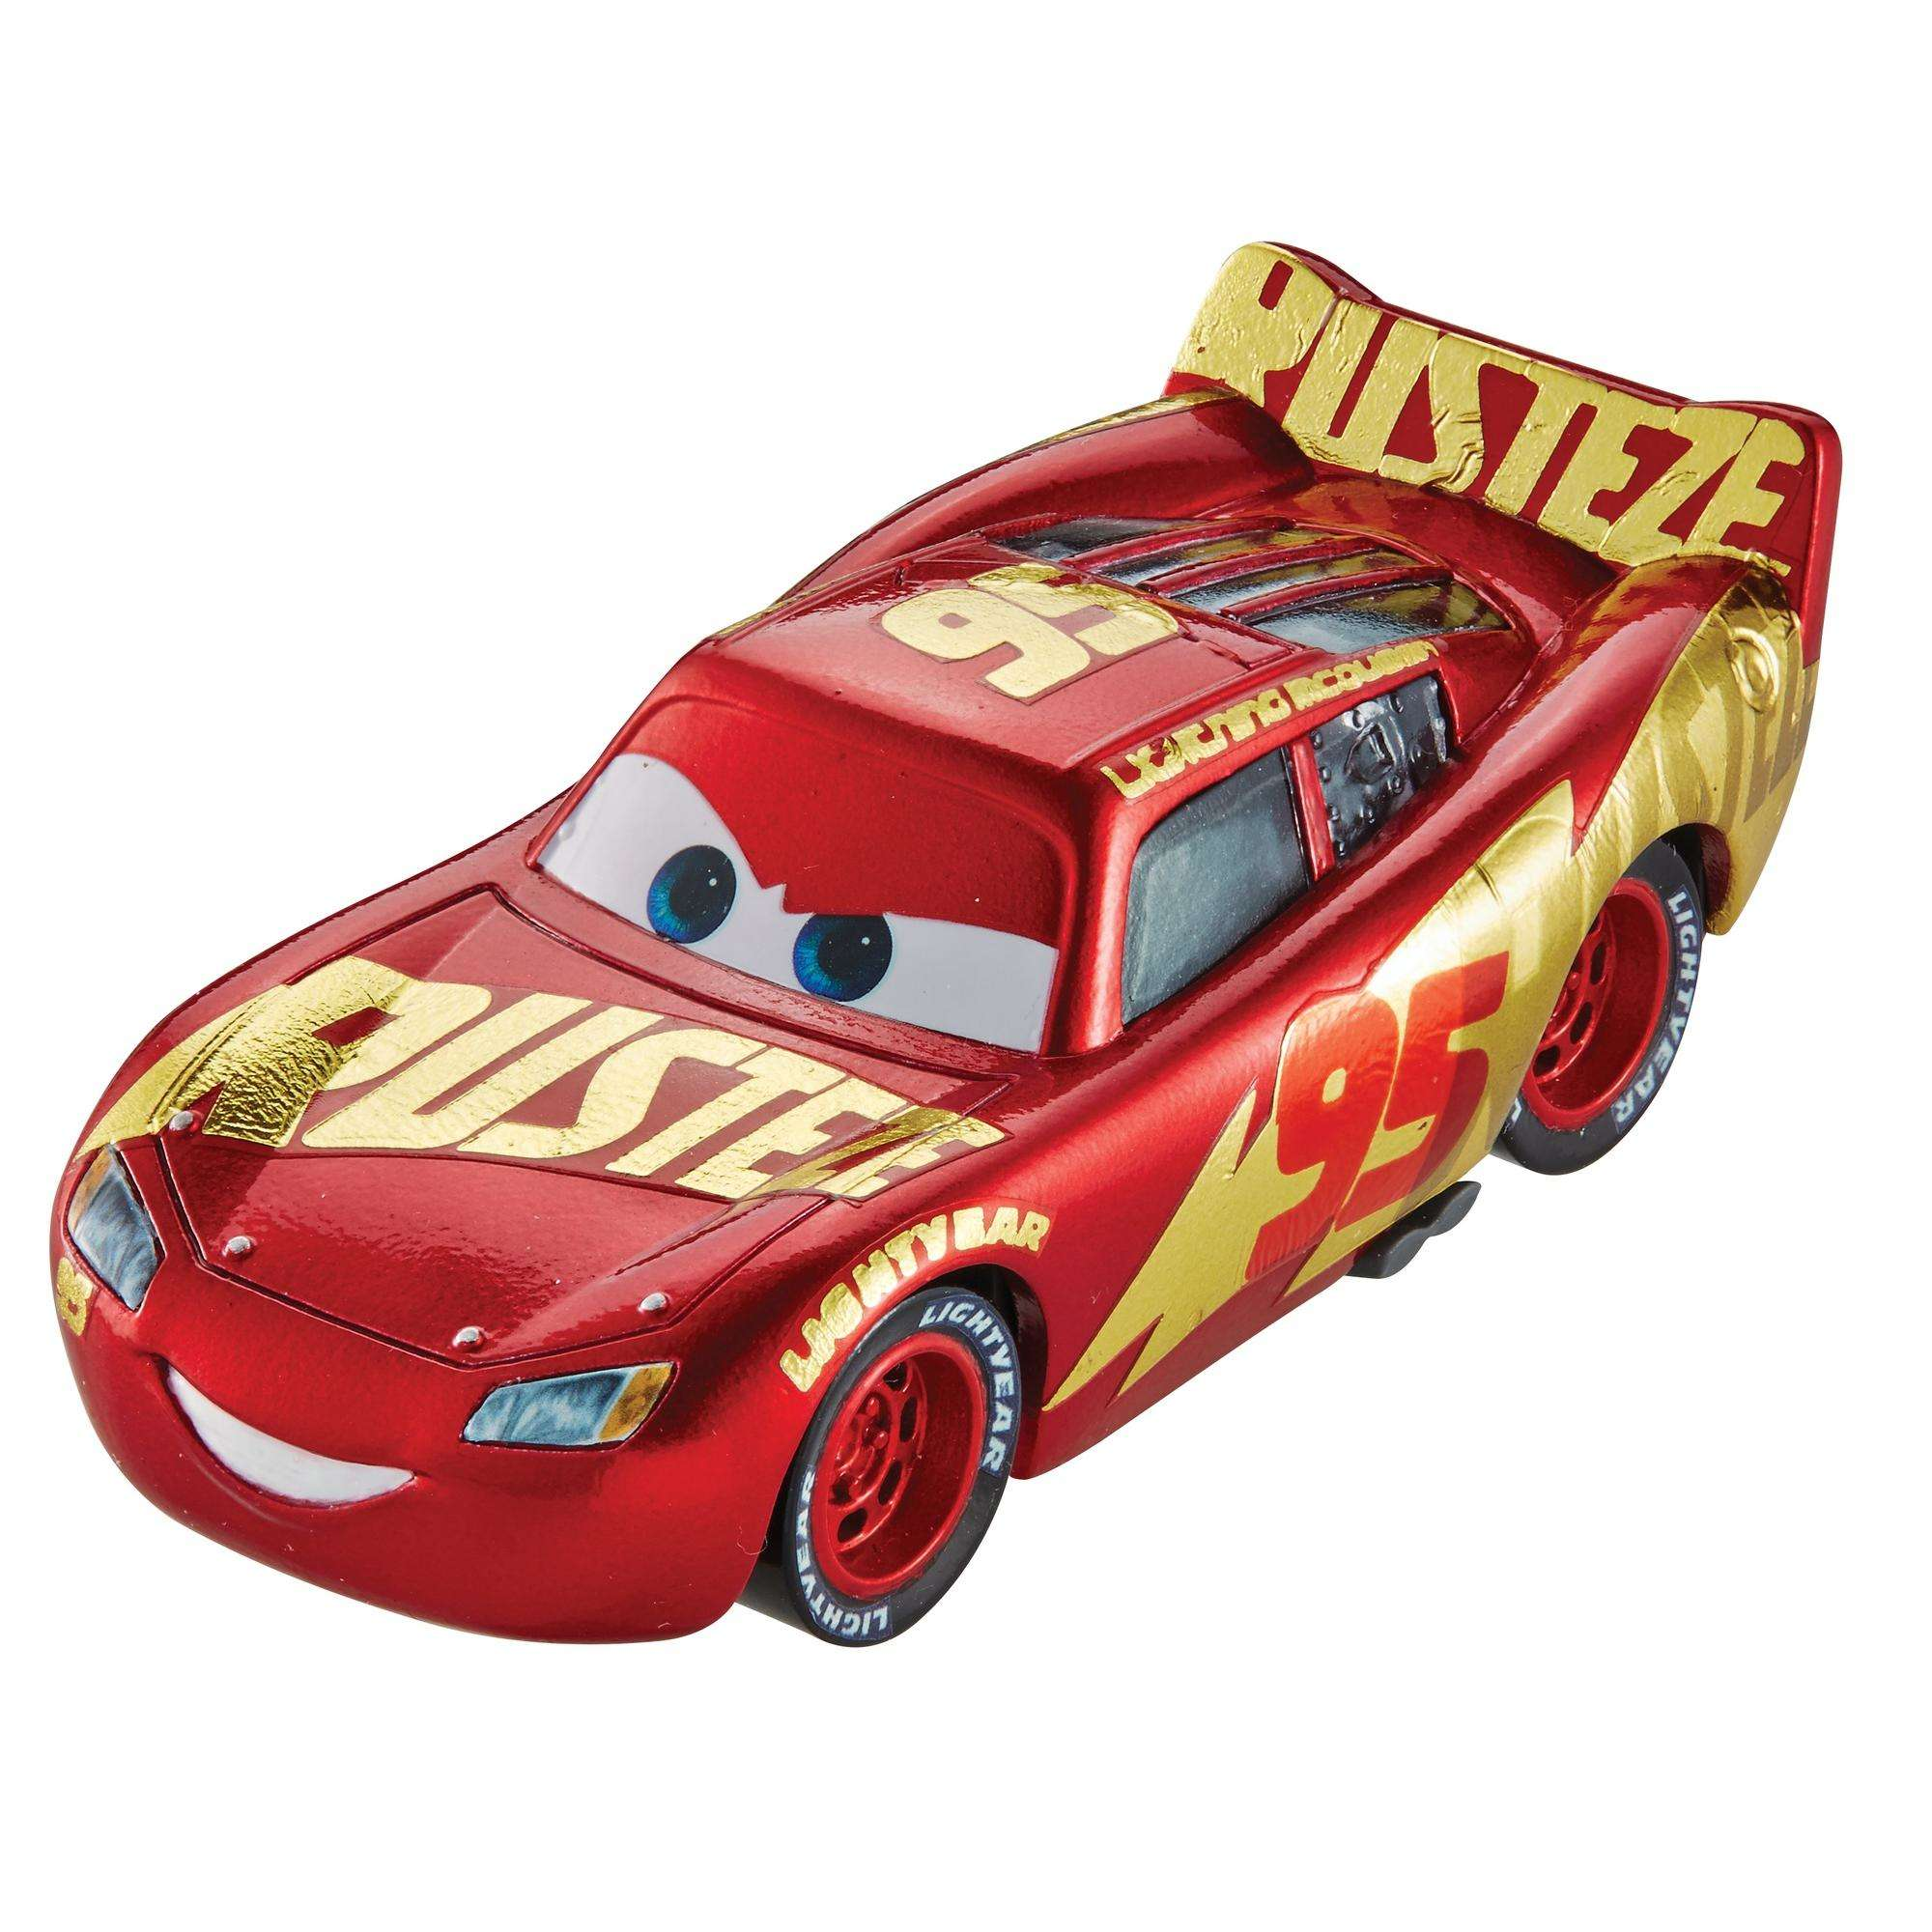 Disney/Pixar Cars 3 Rust-Eze Racing Center Lightning McQueen Die-Cast Vehicle  sc 1 st  Walmart : lighting mcqueen racing - www.canuckmediamonitor.org